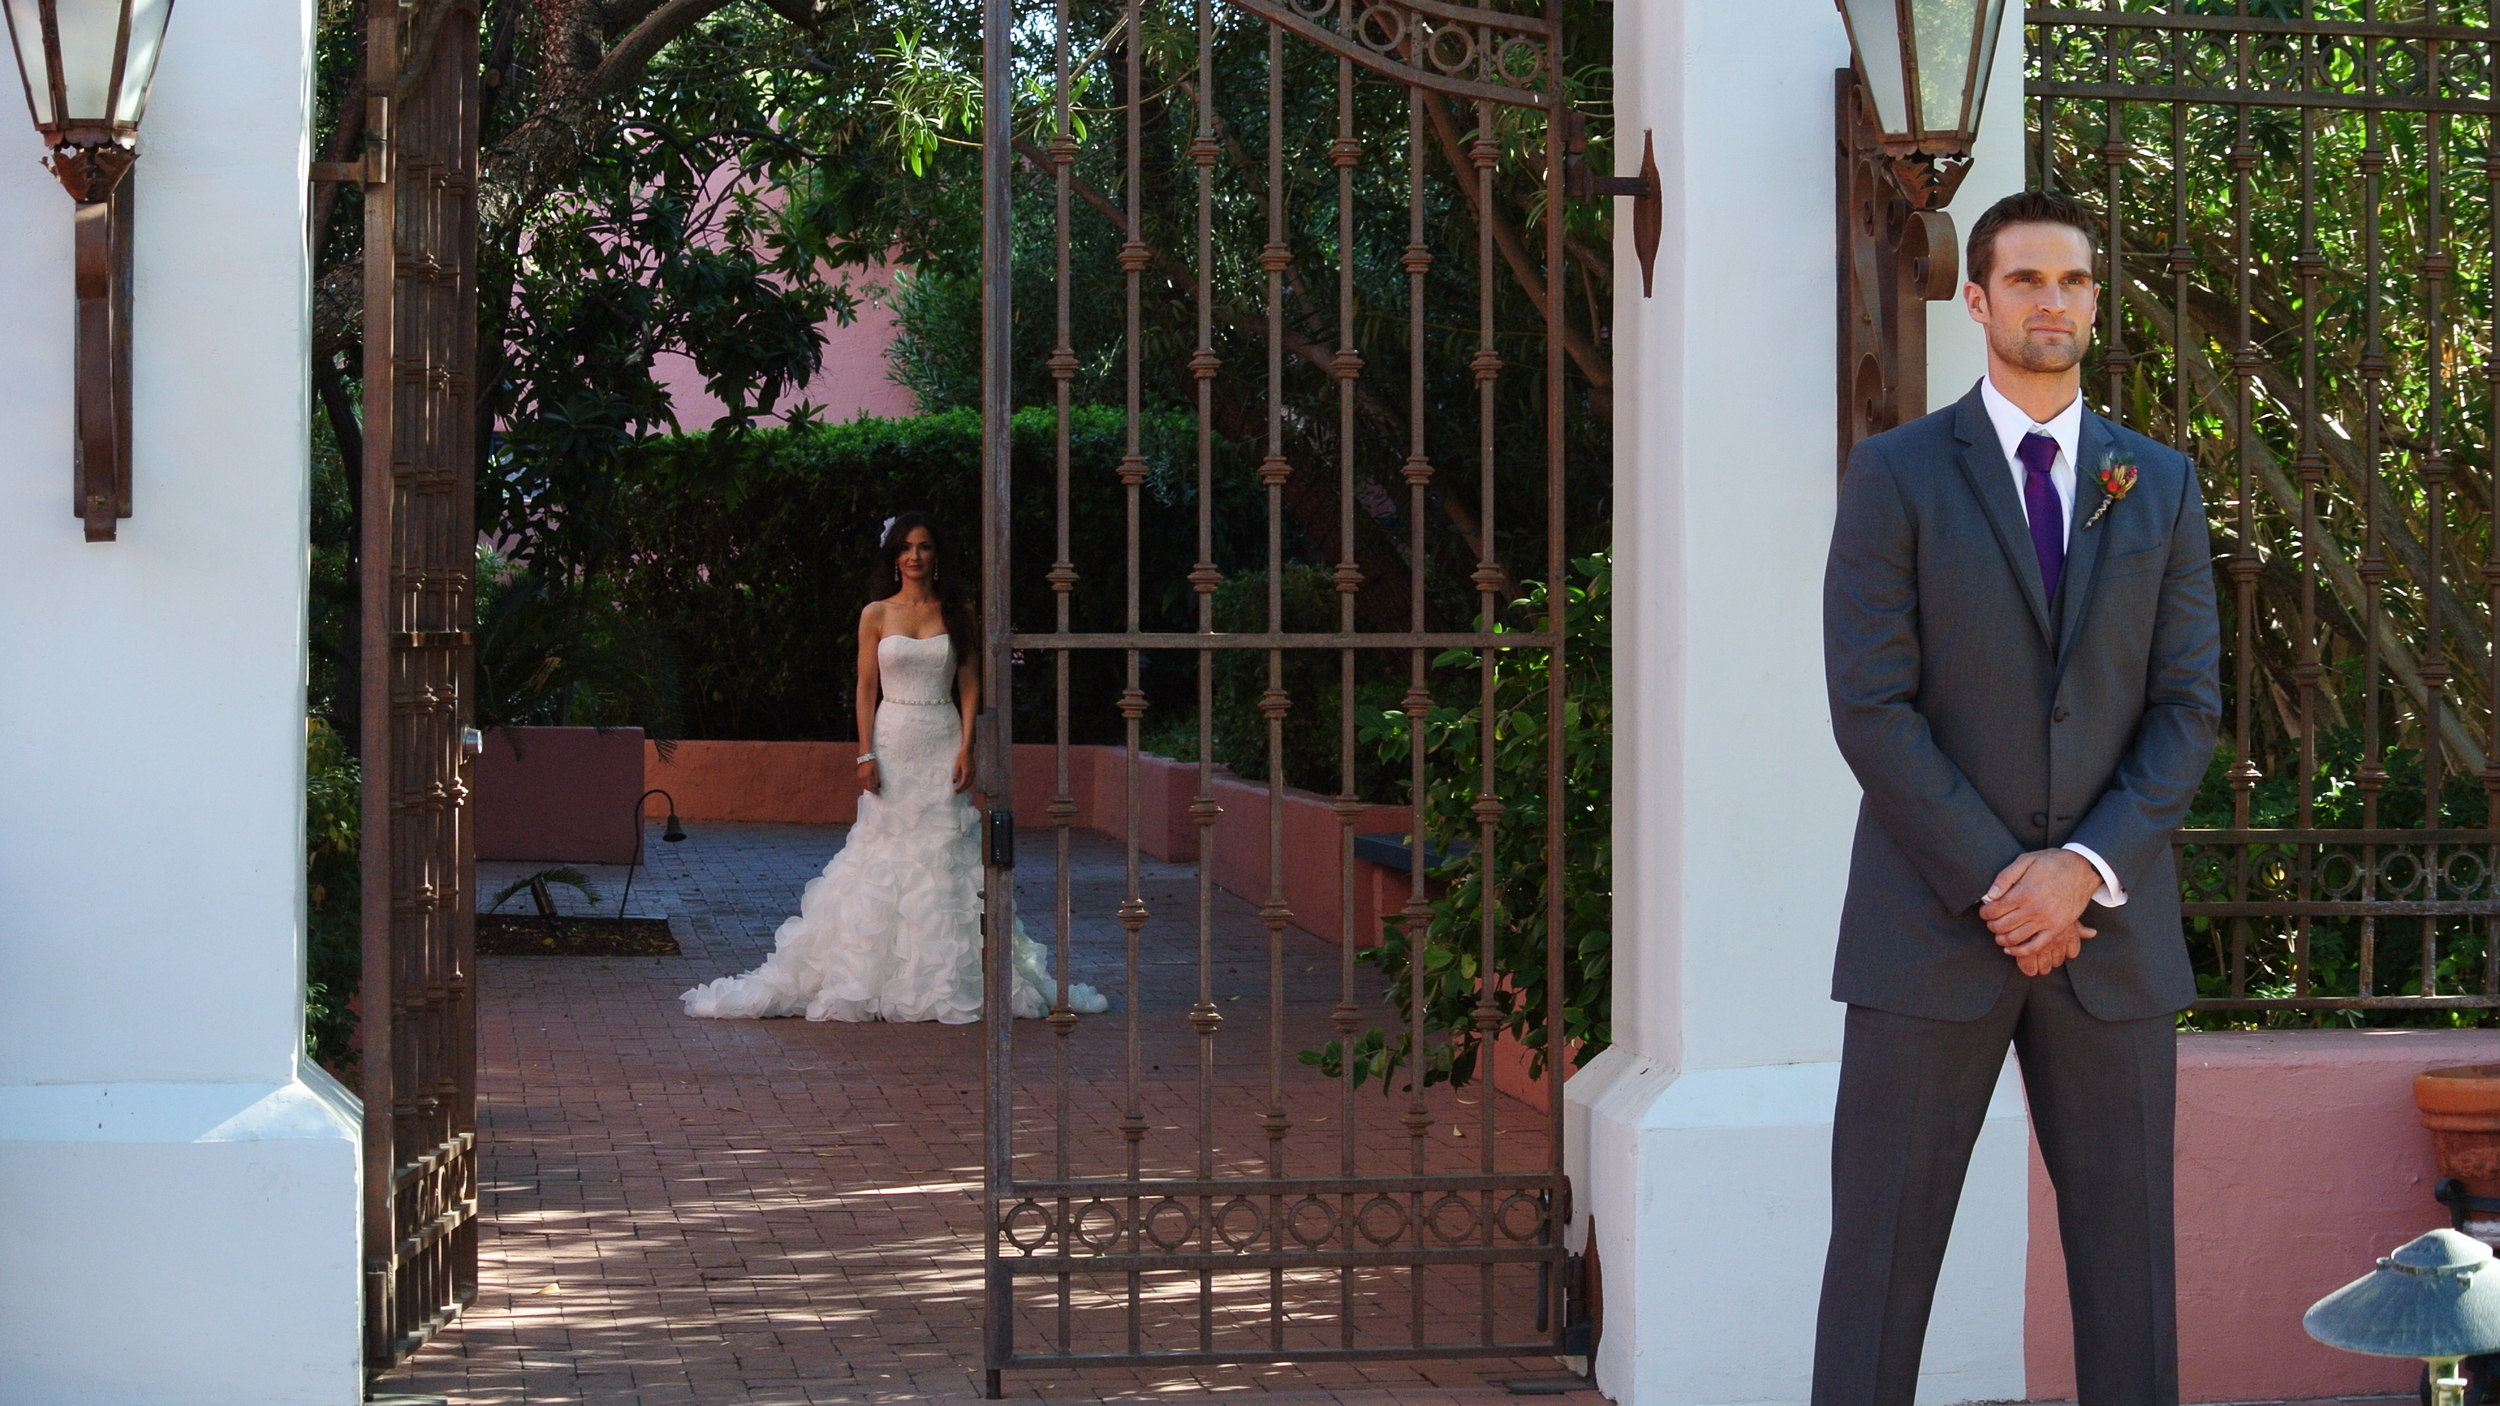 The First Look - Photo by Wedding Planner Andrea Eppolito.